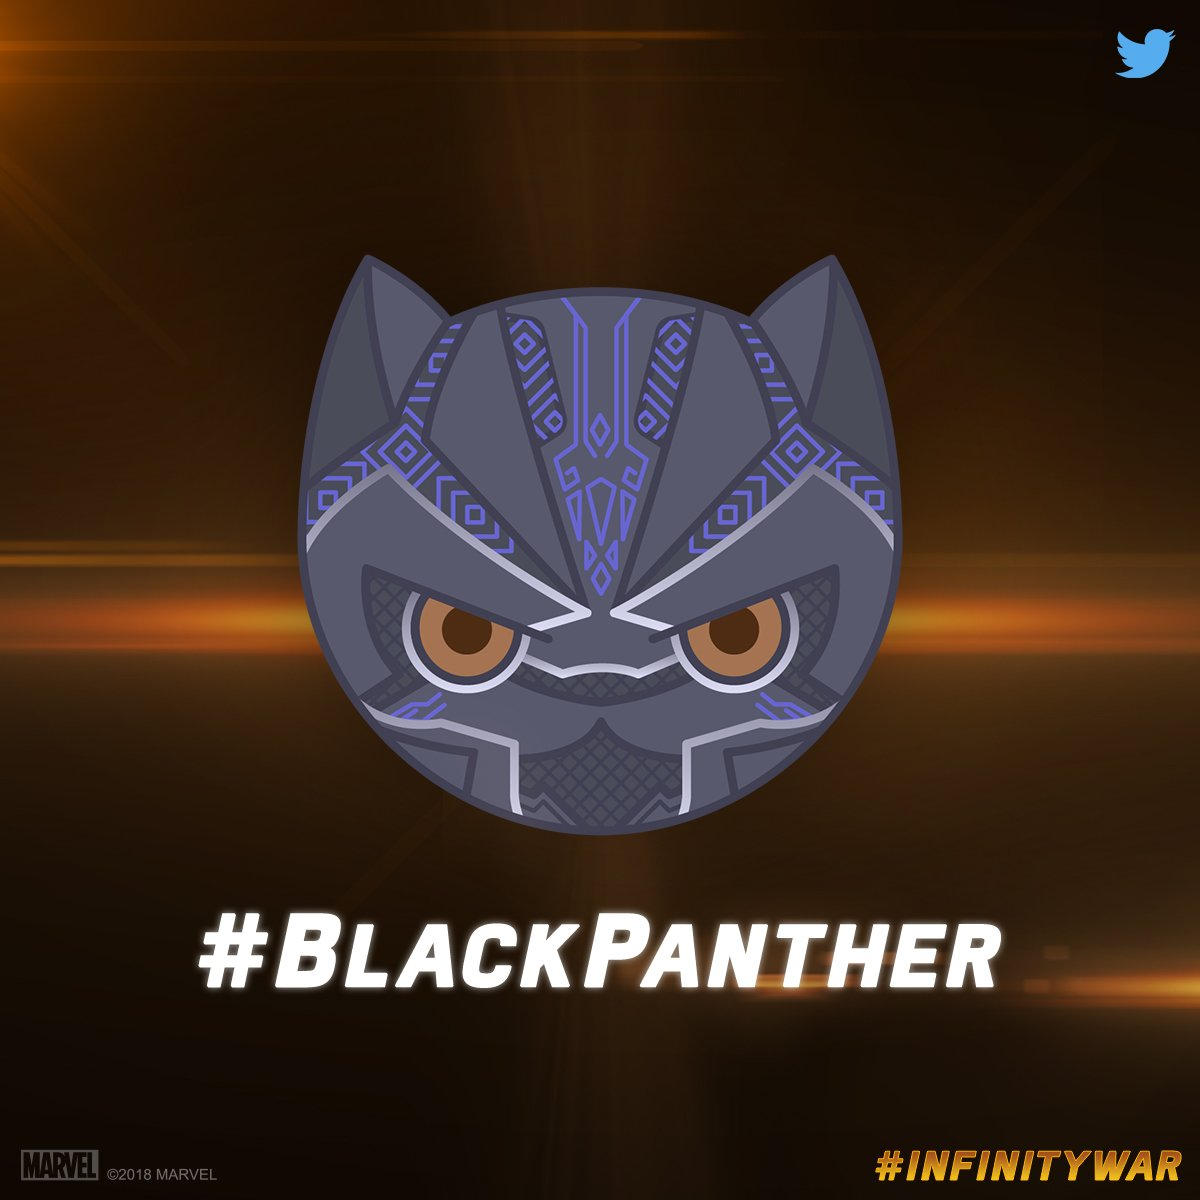 Chadwick Boseman On Twitter Introducing This Guy To The World The New Blackpanther Twitter Emoji Has Officially Arrived Infinitywar